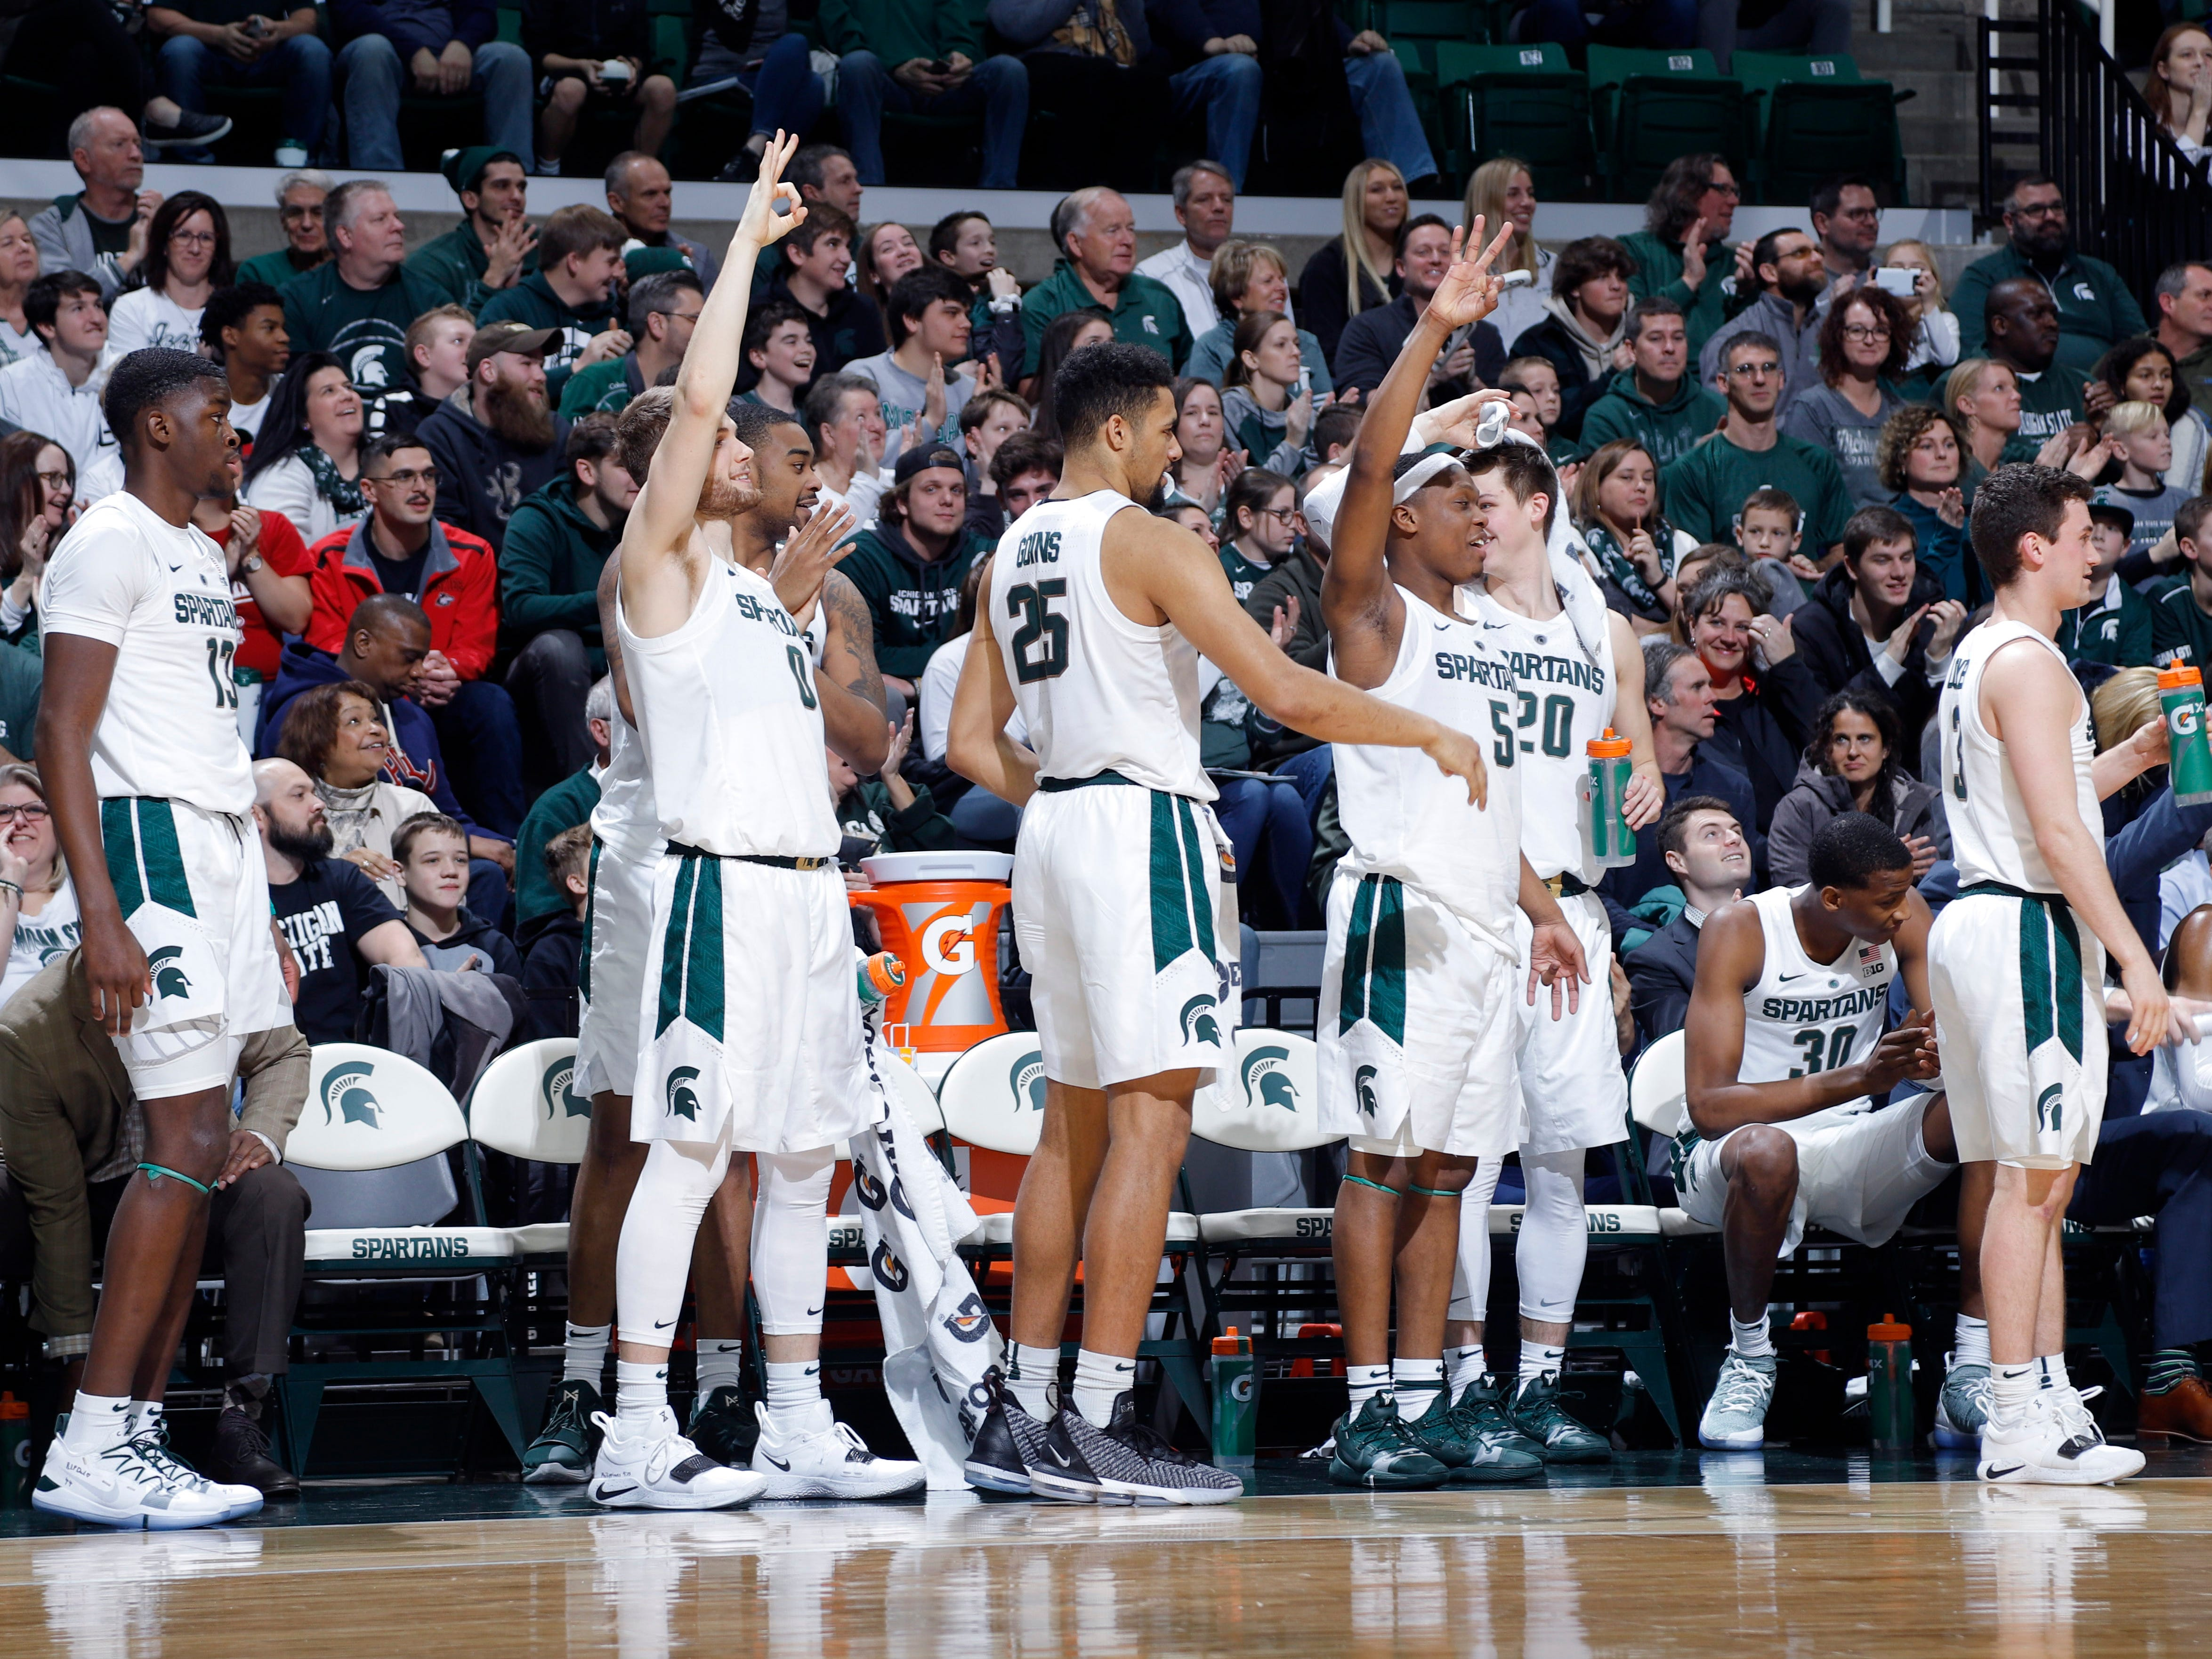 Michigan State's bench celebrates in the closing minutes against Northern Illinois, Saturday, Dec. 29, 2018, in East Lansing, Mich.